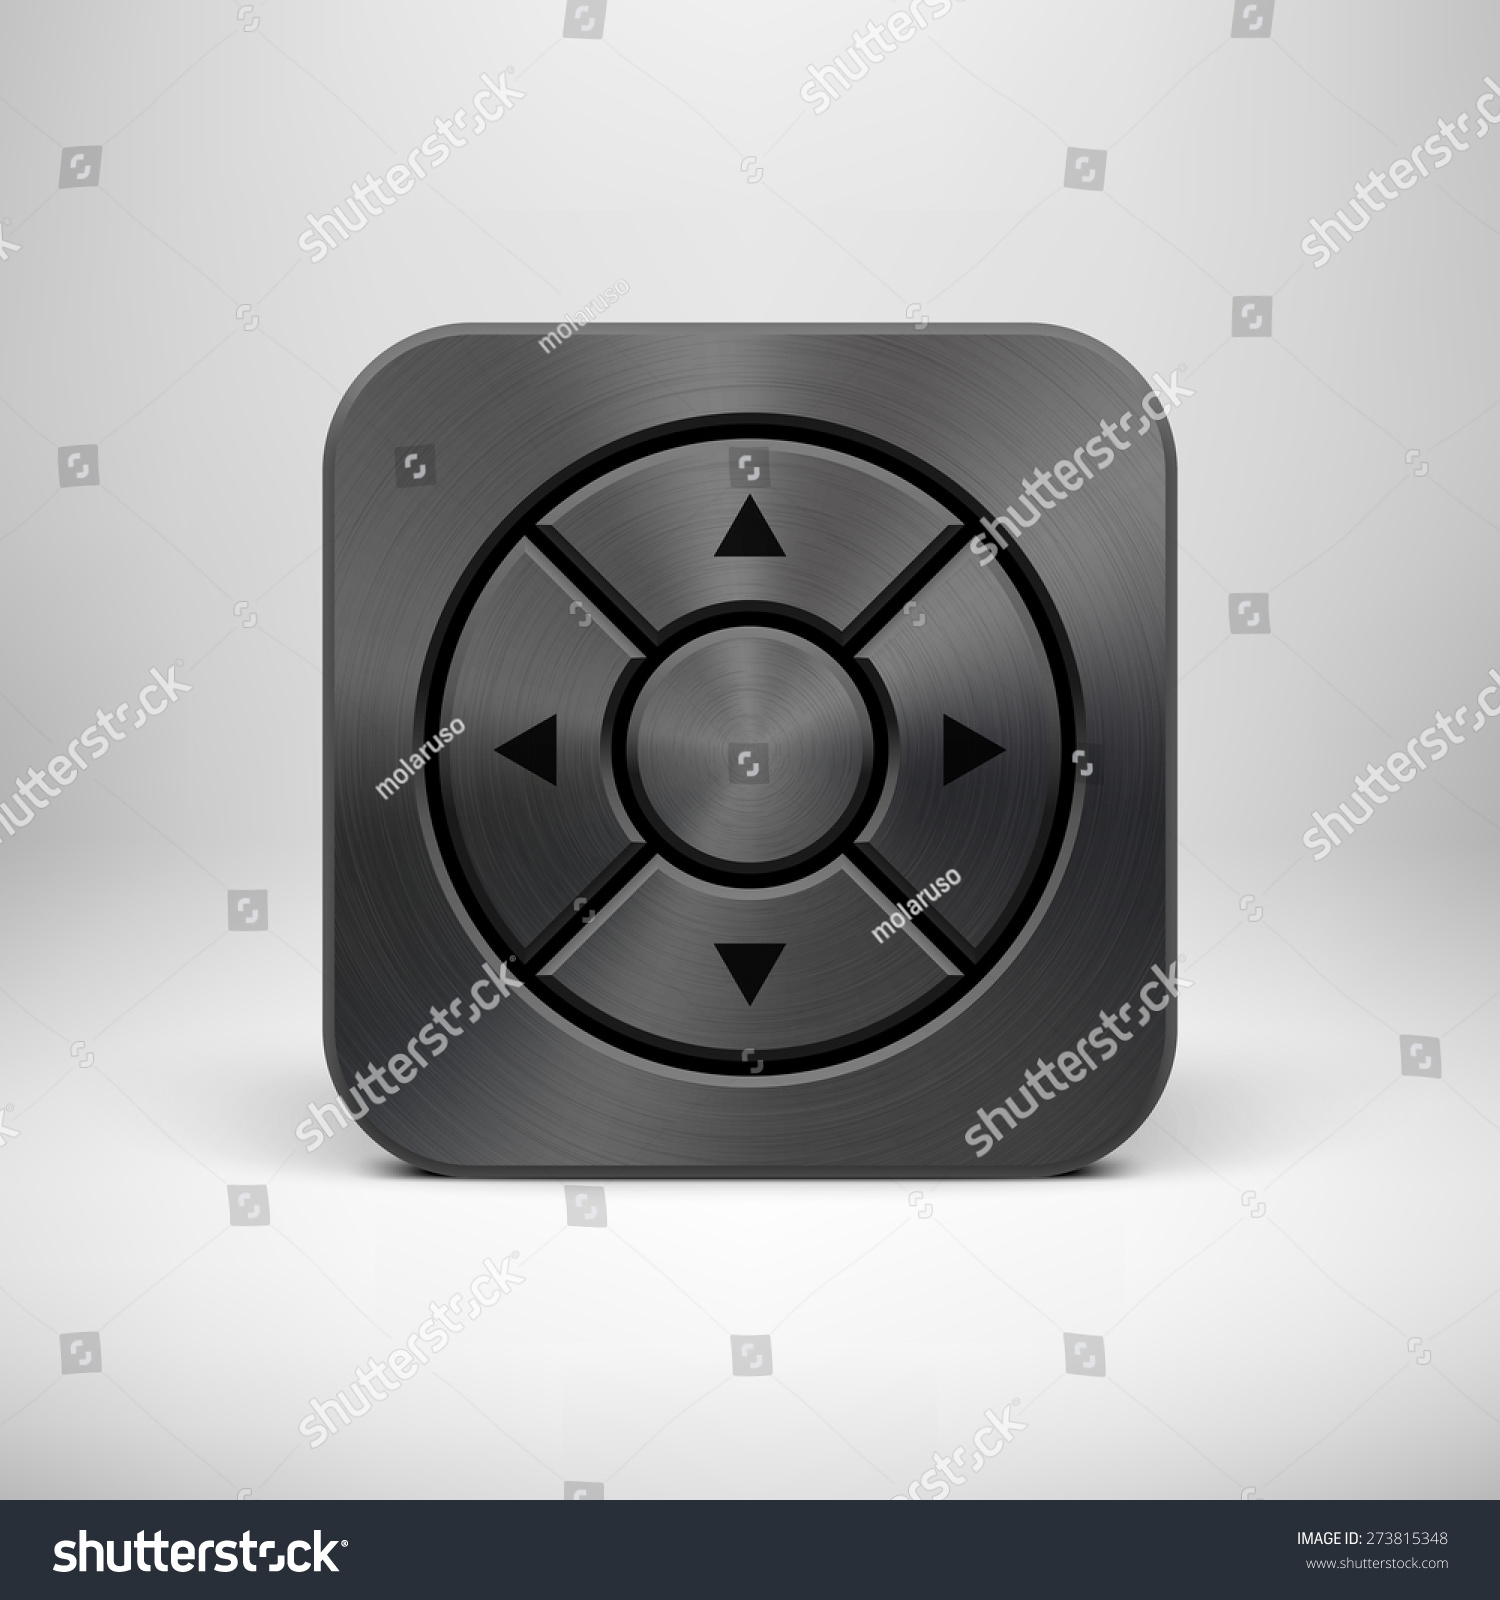 black abstract technology app icon button stock vector 273815348 shutterstock. Black Bedroom Furniture Sets. Home Design Ideas